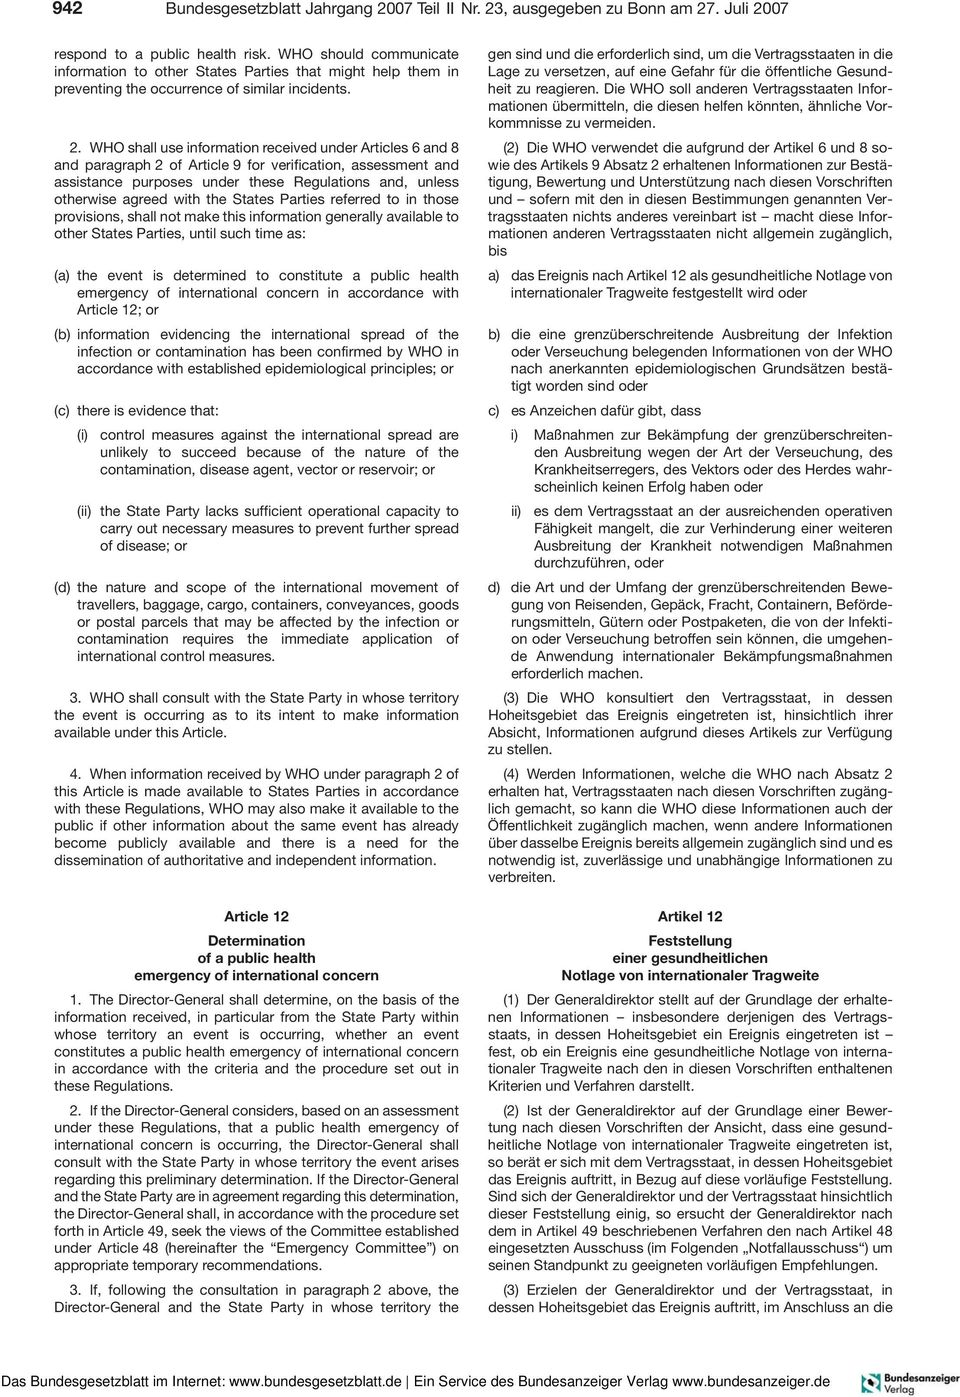 WHO shall use information received under Articles 6 and 8 and paragraph 2 of Article 9 for verification, assessment and assistance purposes under these Regulations and, unless otherwise agreed with